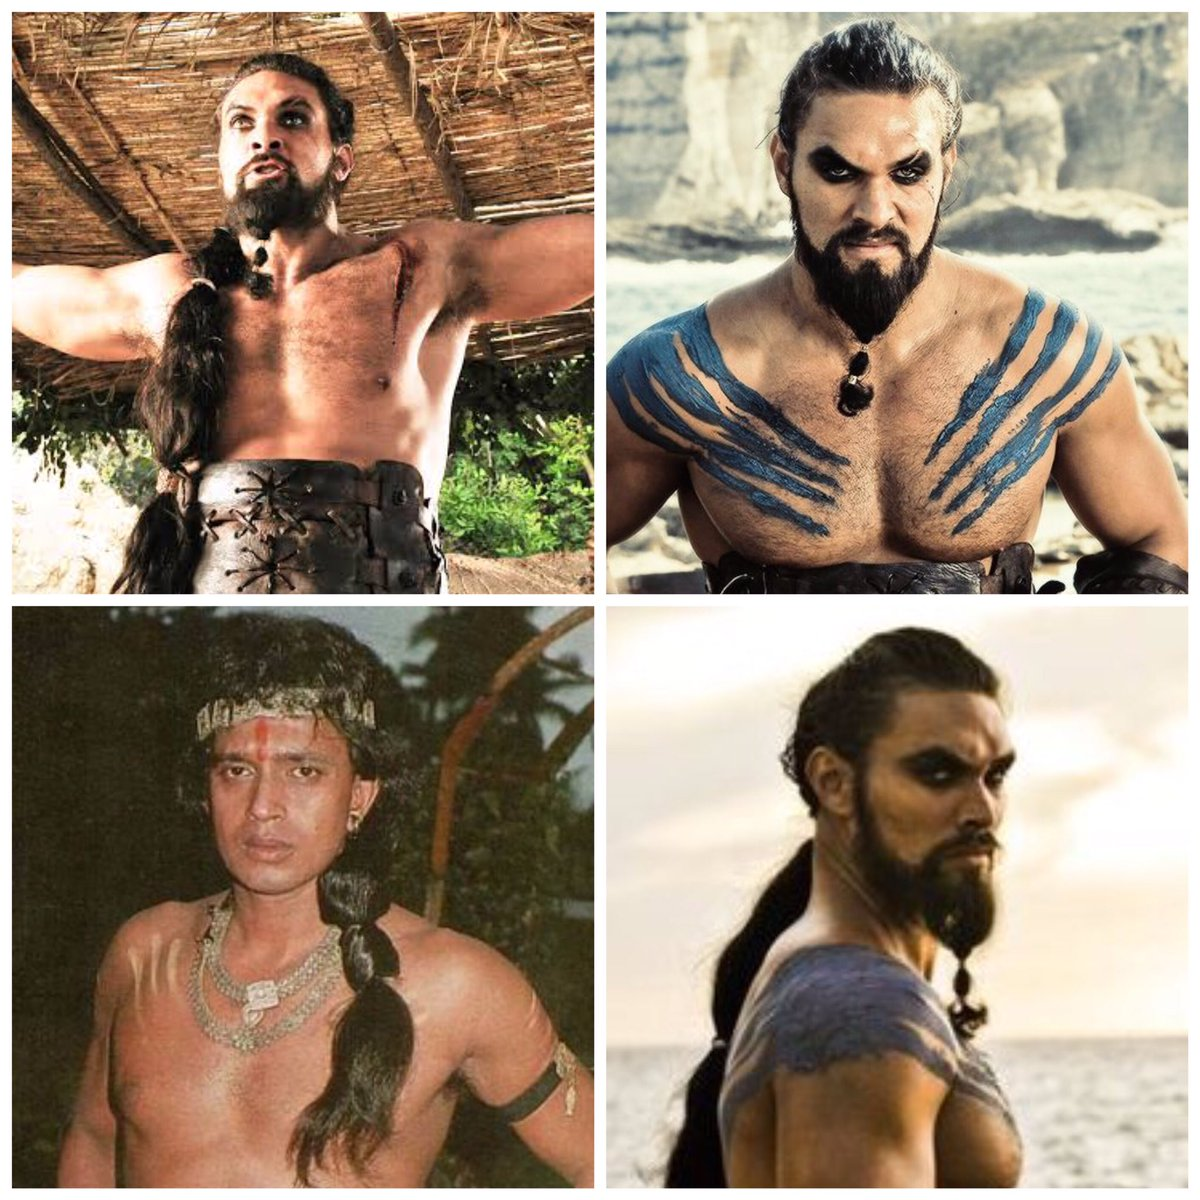 Khal drogo from GOT is my favourite character